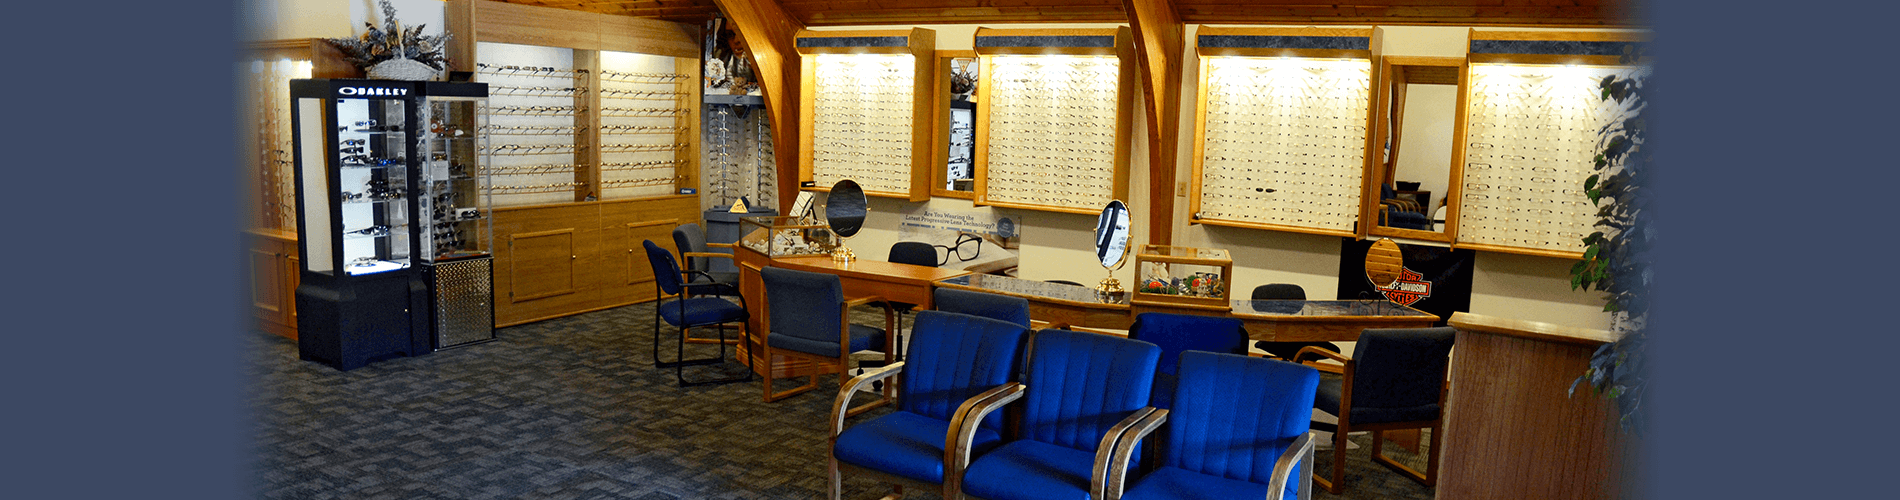 in-house optical lab paducah kentucky